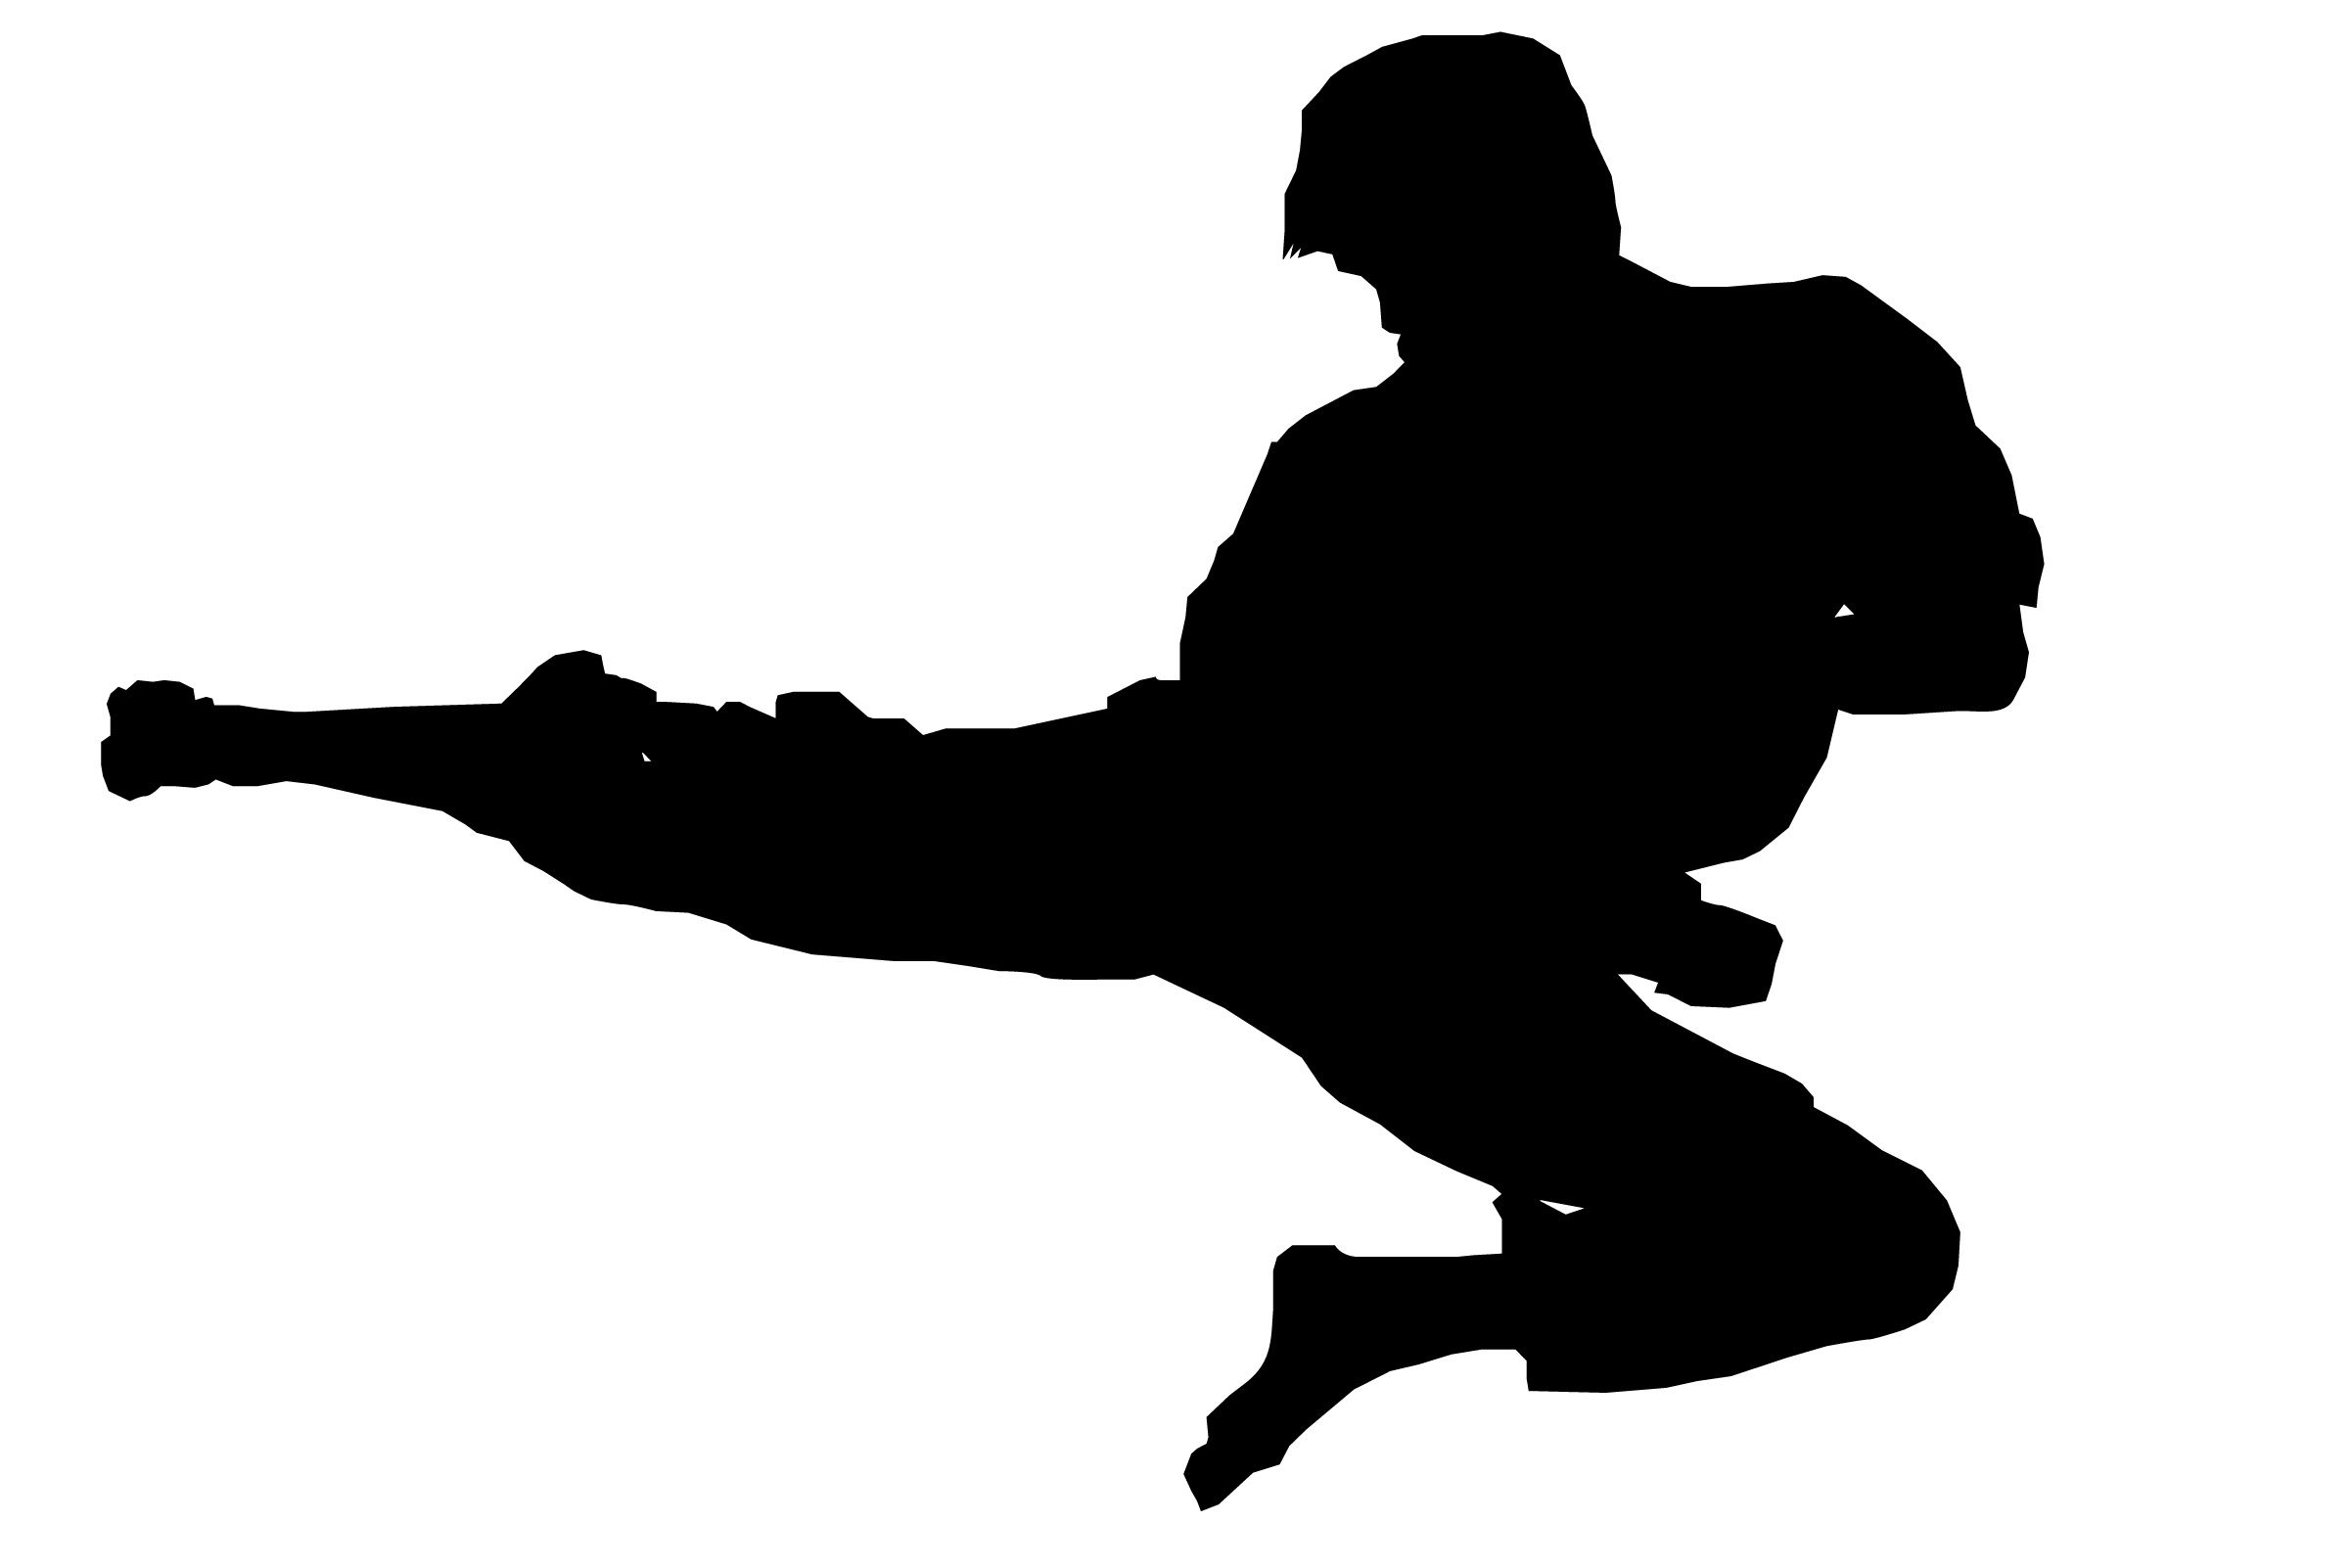 png library library Silhouette clip art demonstration. Karate kick clipart.